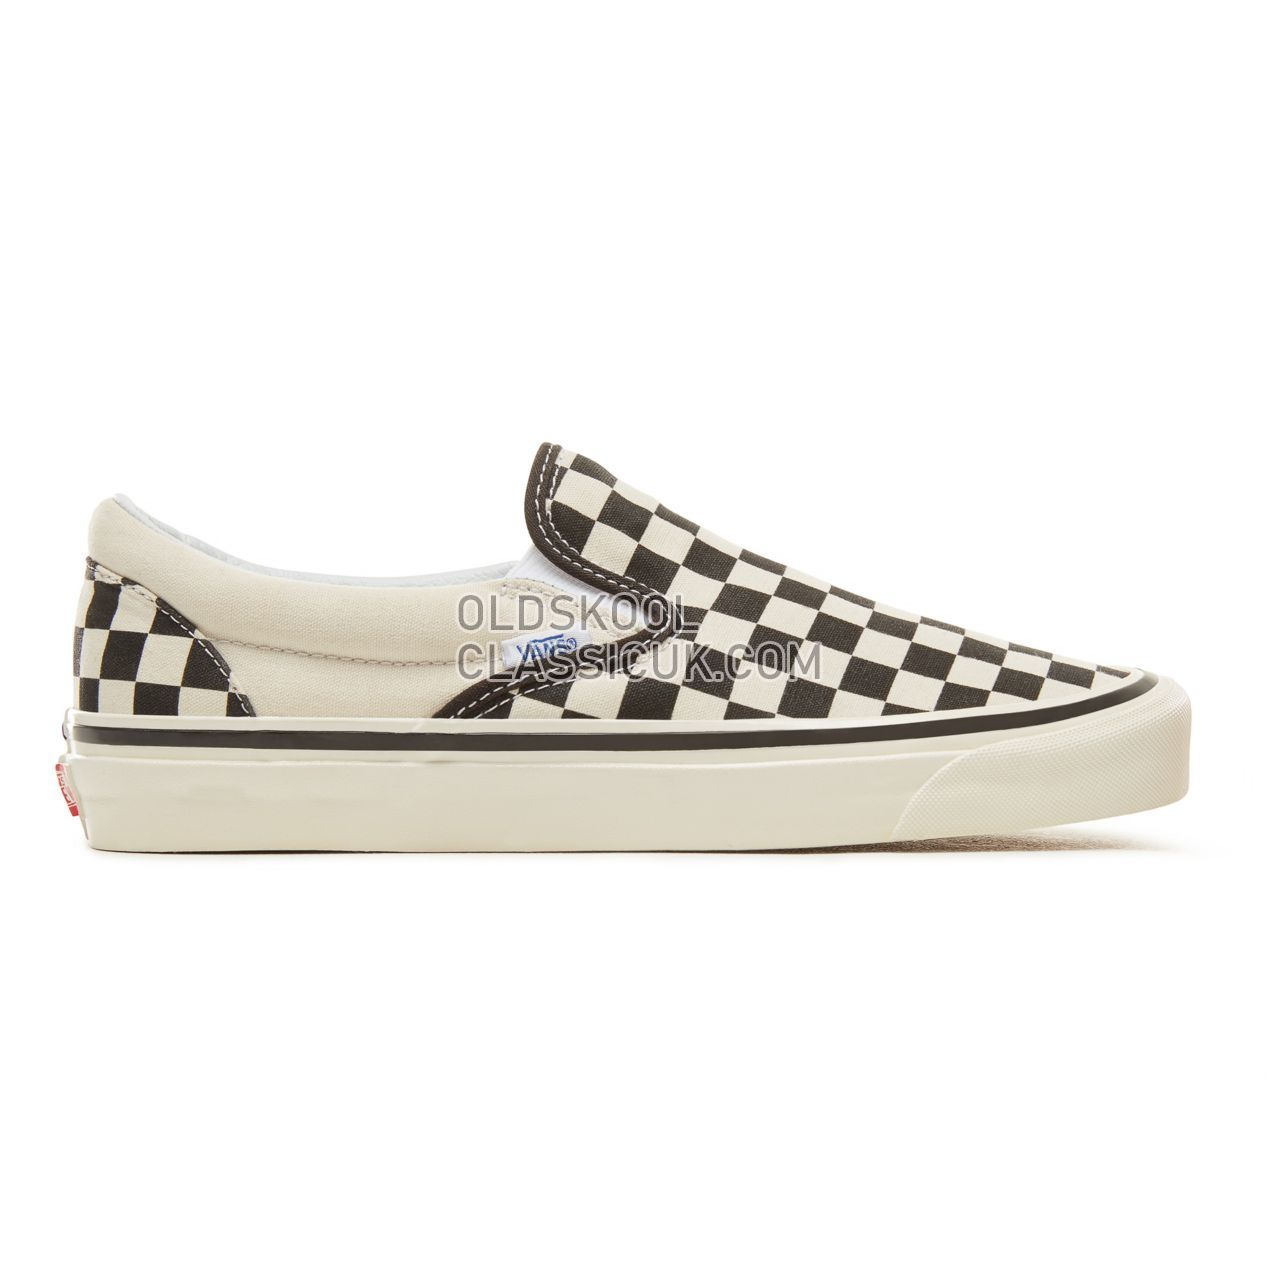 Vans Anaheim Factory Classic Slip-On 98 Sneakers Mens Checkerboard-Black-White VA3JEXPU1 Shoes